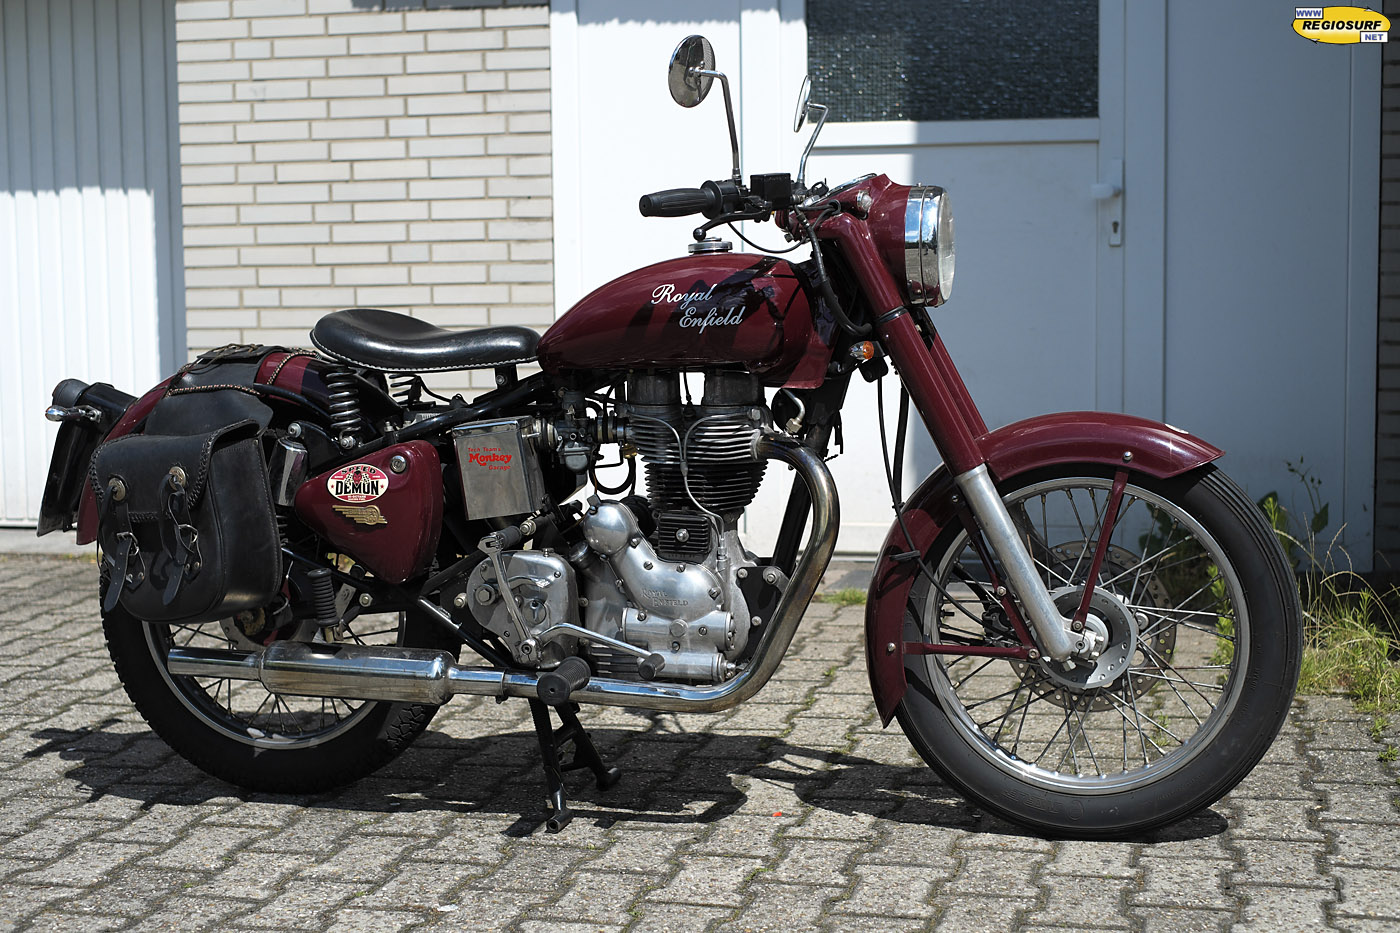 royal enfield report Professional value report new home price report access online print guidebooks royal enfield bikes are known for being classically styled and utilized for leisure motorcyling.